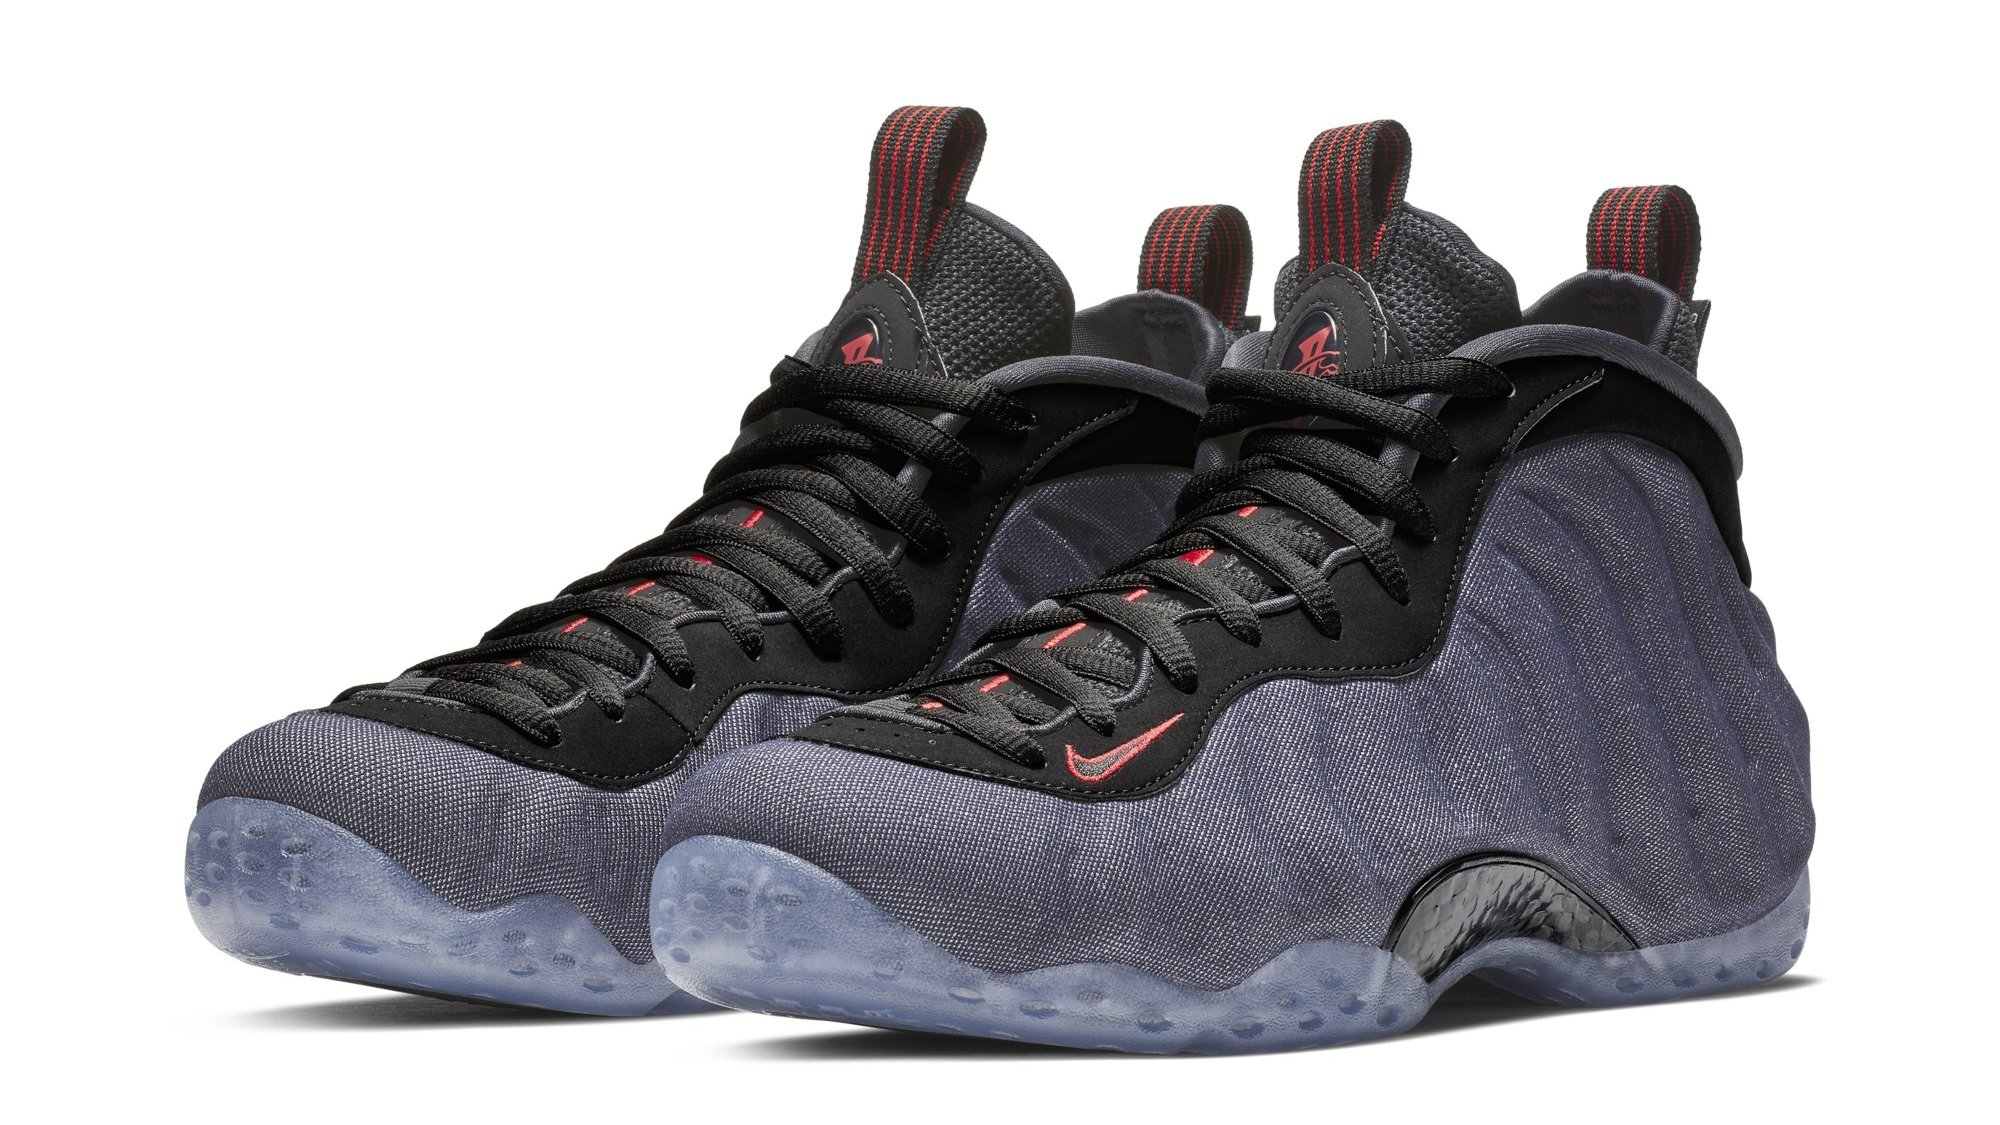 low priced 24c10 3ac61 Nike Air Foamposite One Denim Release Date 314996-404   Sole Collector